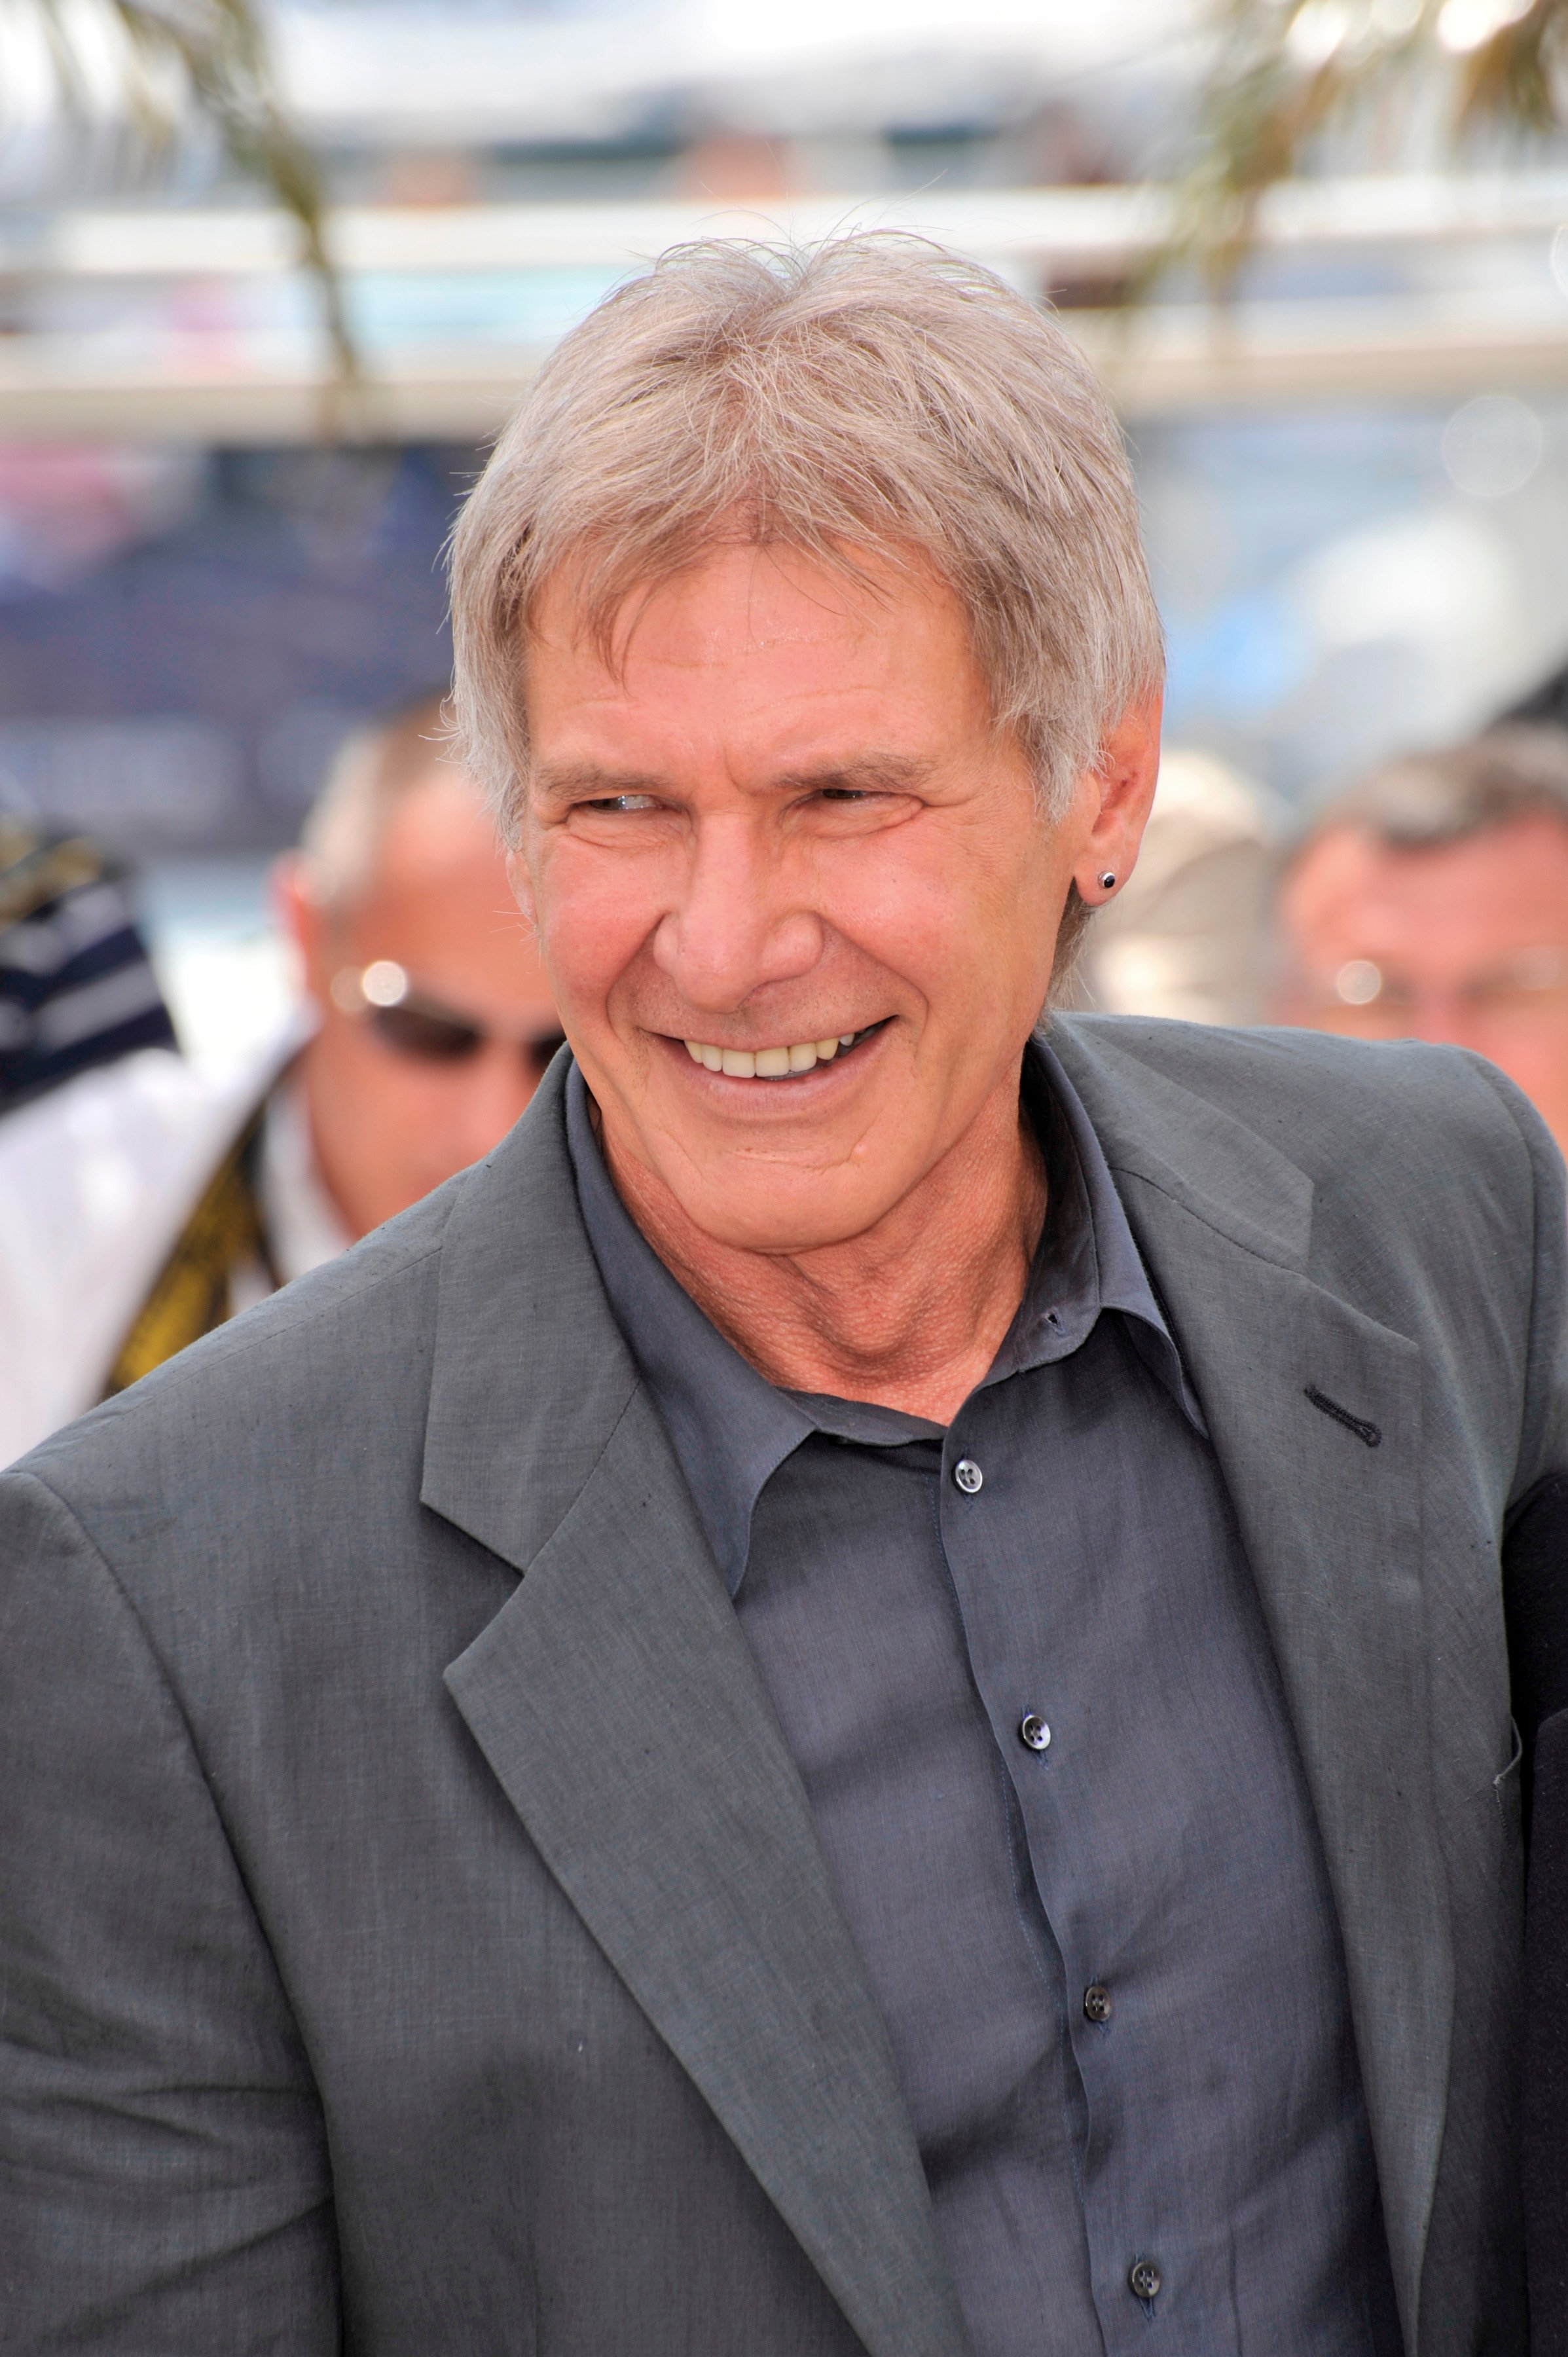 """Harrison Ford at photocall for """"Indiana Jones and the Kingdom of the Crystal Skull"""" at the 61st Annual Cannes Film Festival on May 18, 2008 Cannes, France 